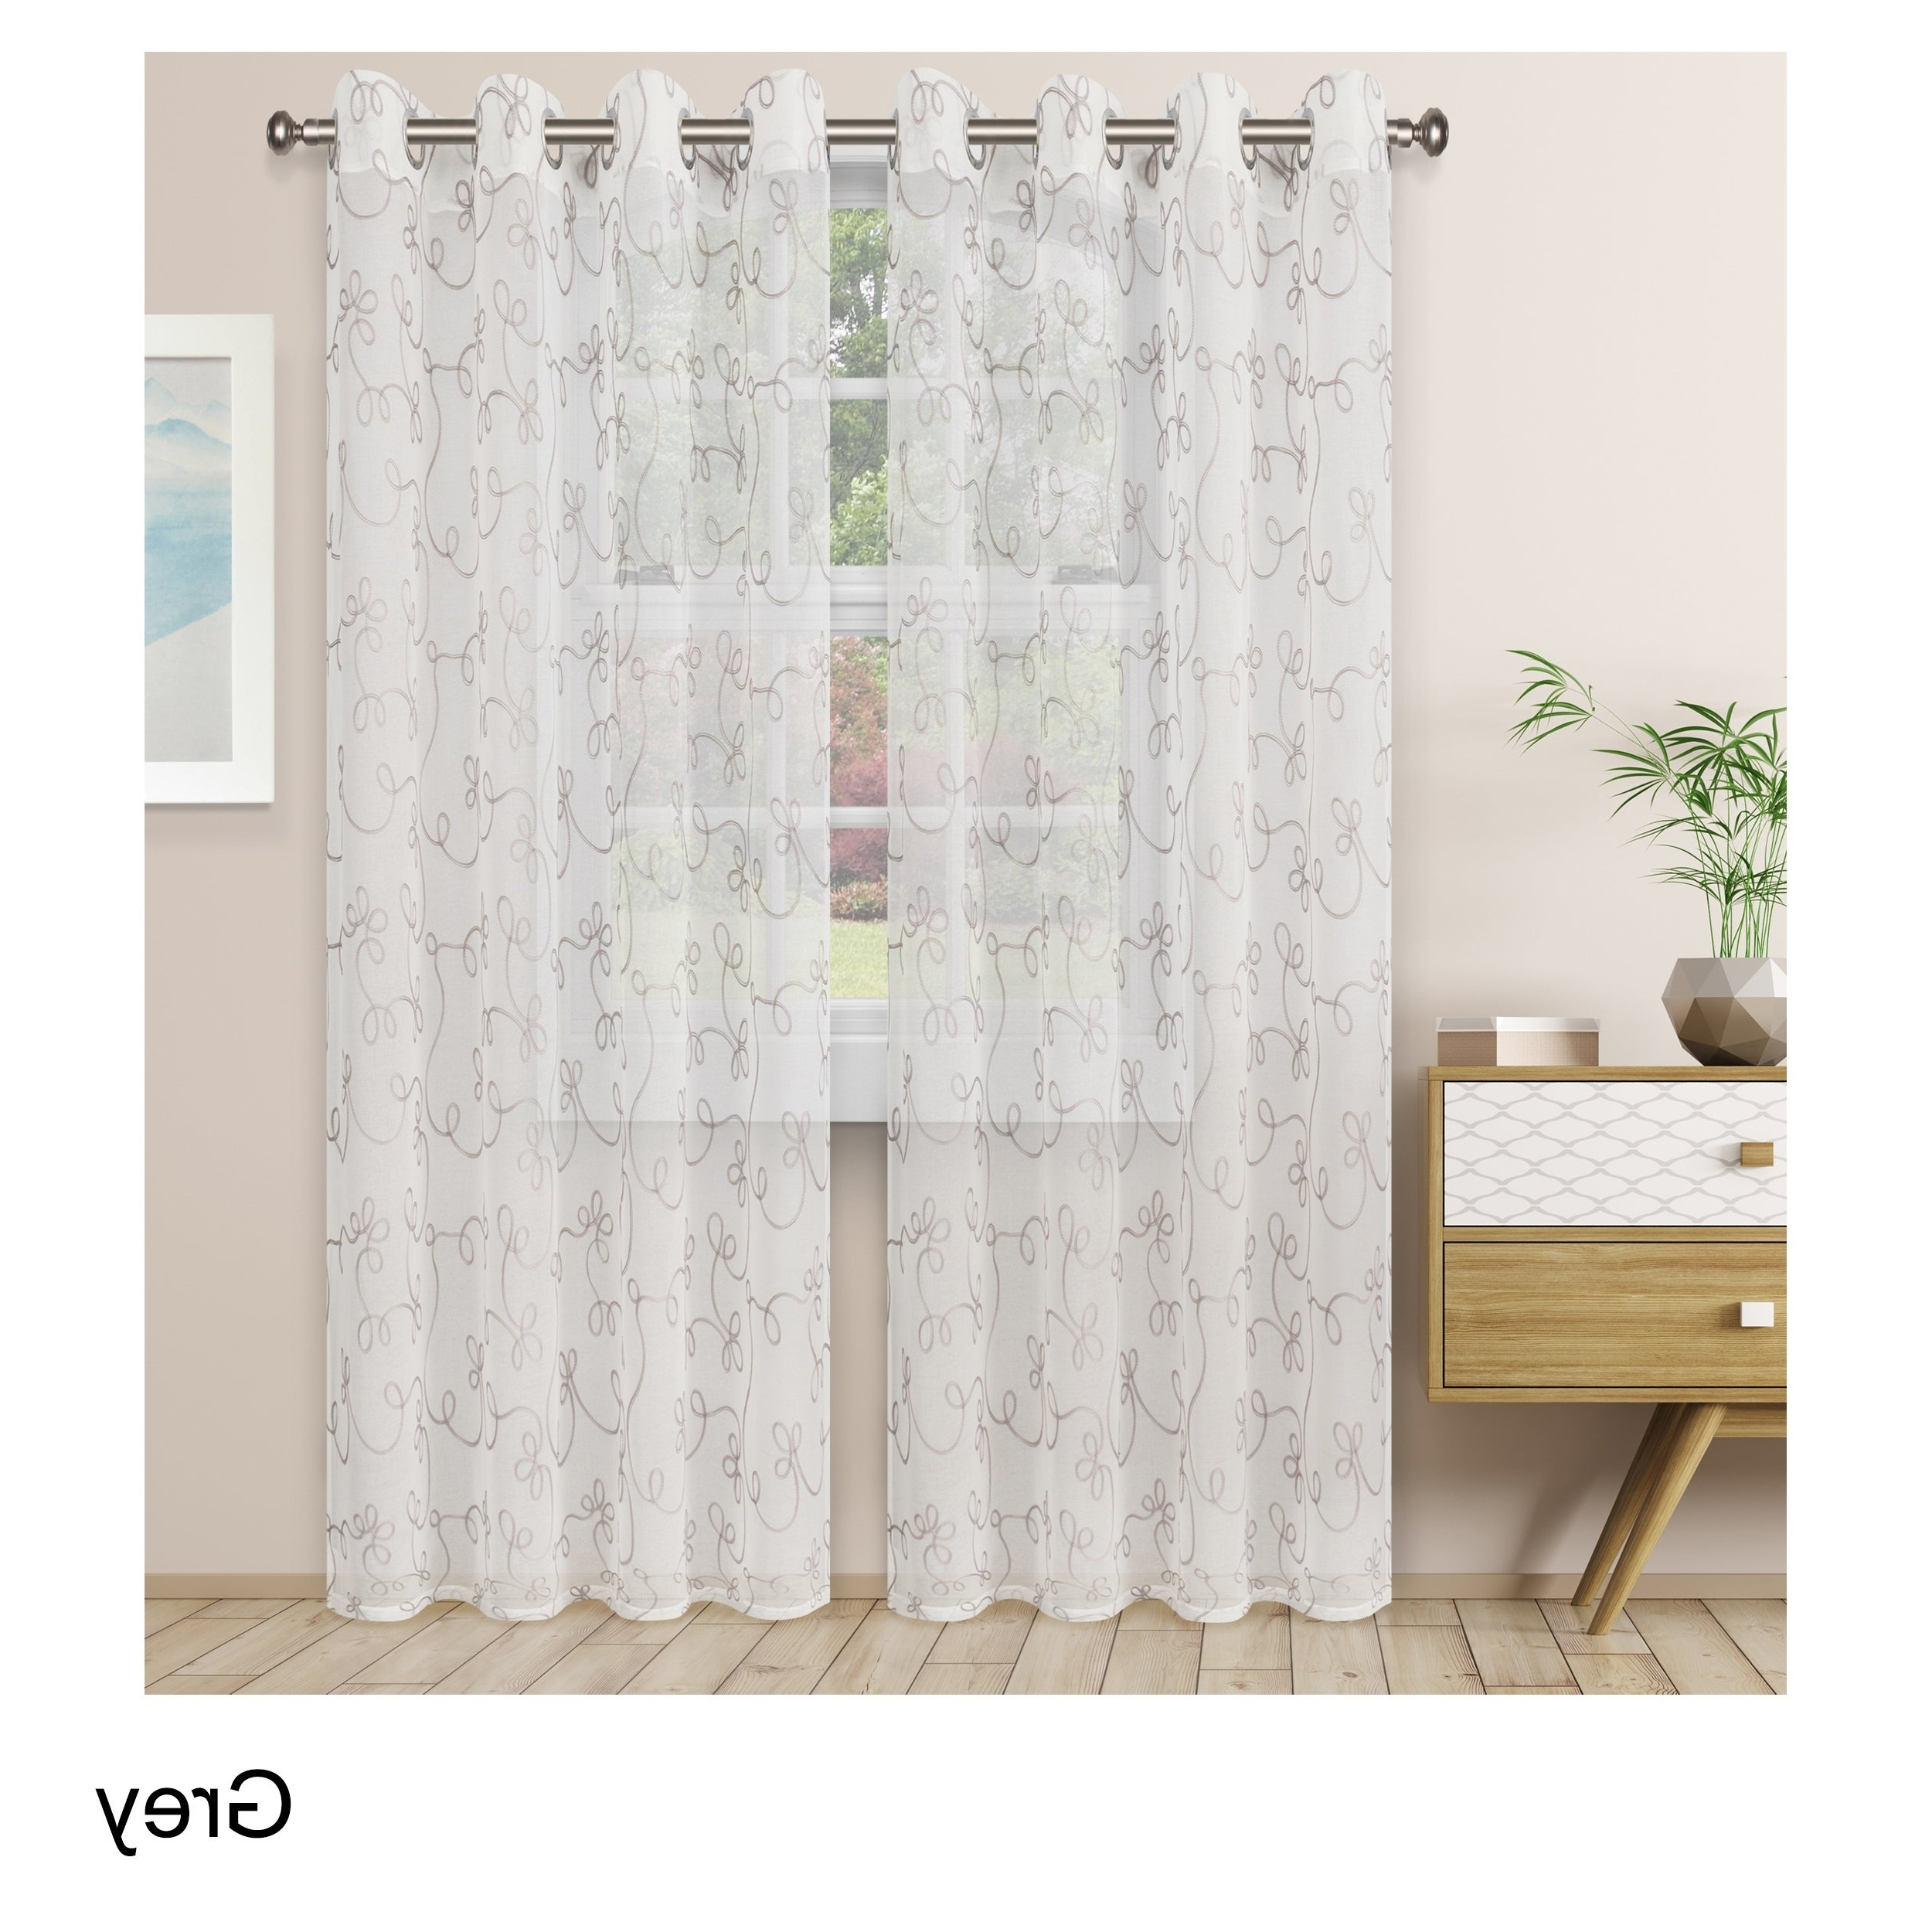 Well Liked Overseas Leaf Swirl Embroidered Curtain Panel Pairs With Regard To Superior Embroidered Scroll Sheer Grommet Curtain Panel Pair (View 21 of 21)